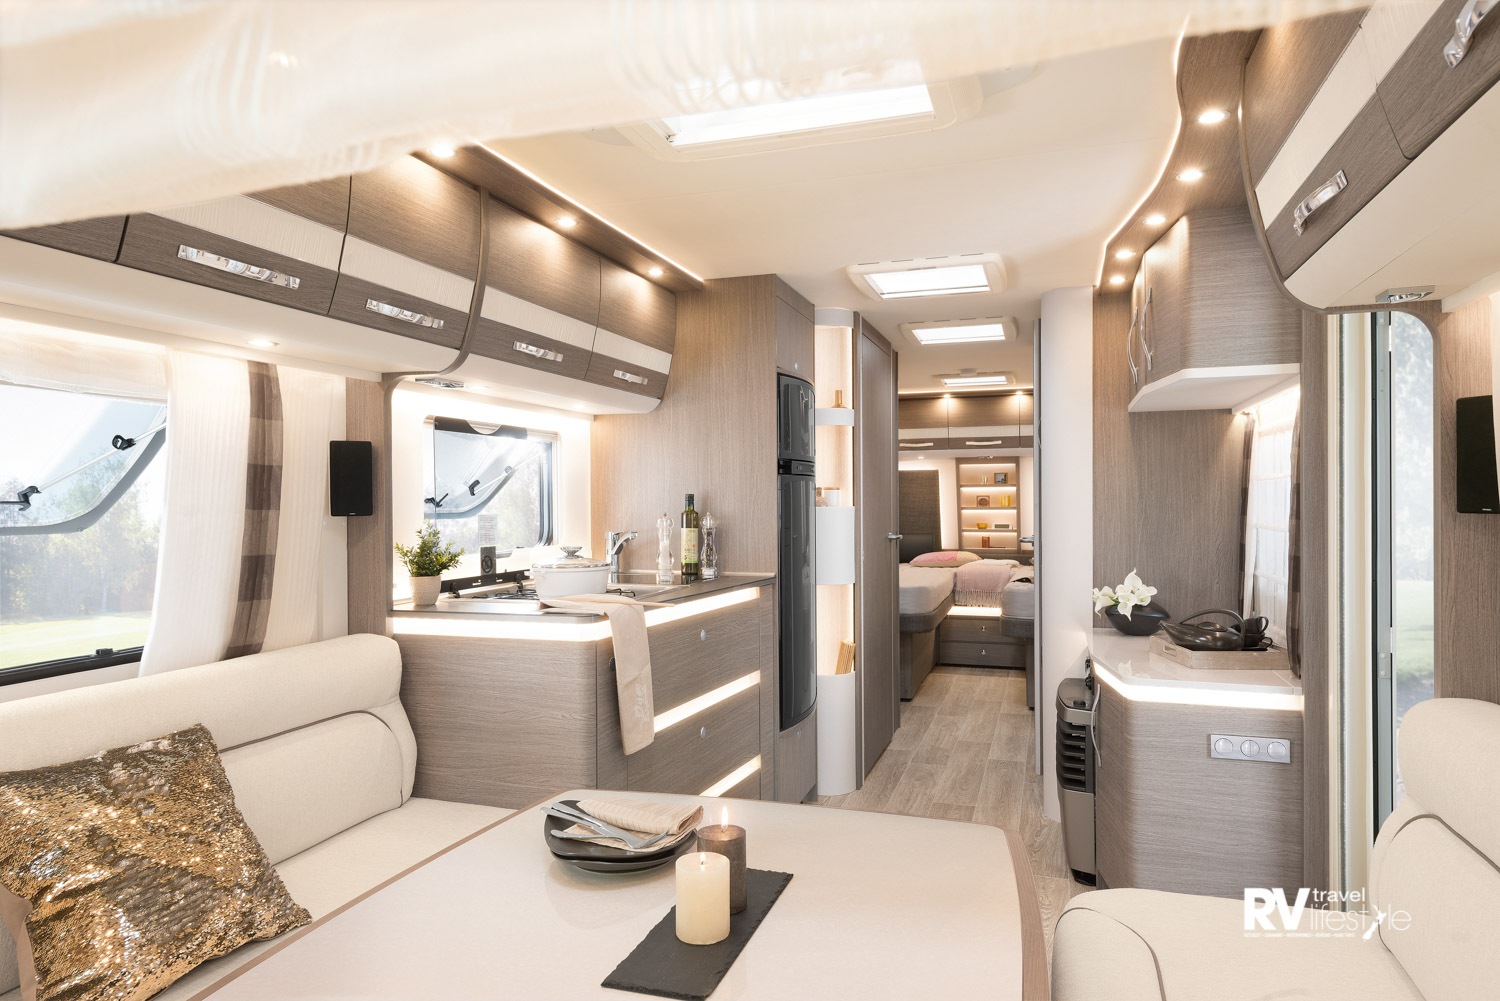 The Dethleffs 760DR looks more like a luxury apartment than a caravan